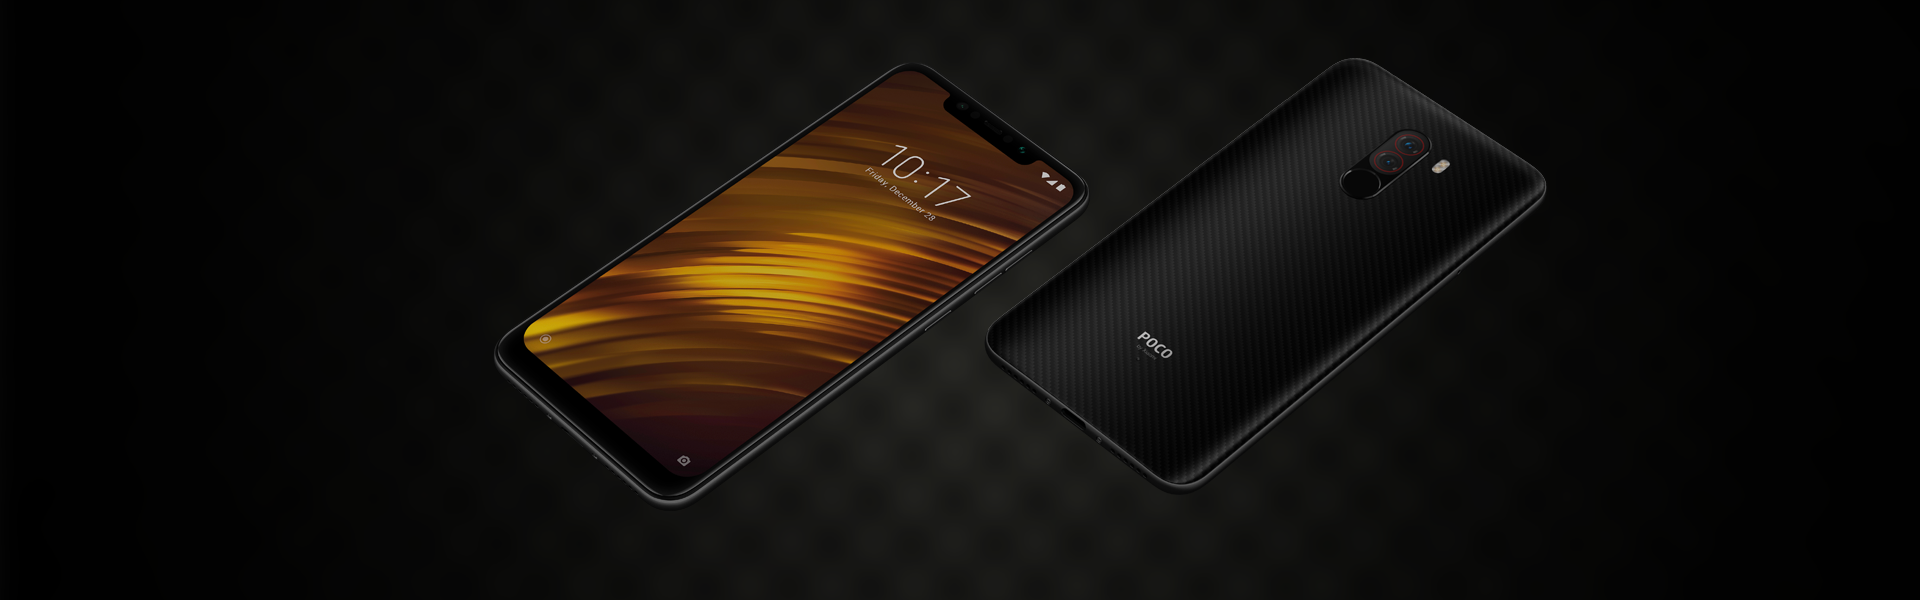 POCO F1: </br>Incredible performance at an unbeatable price